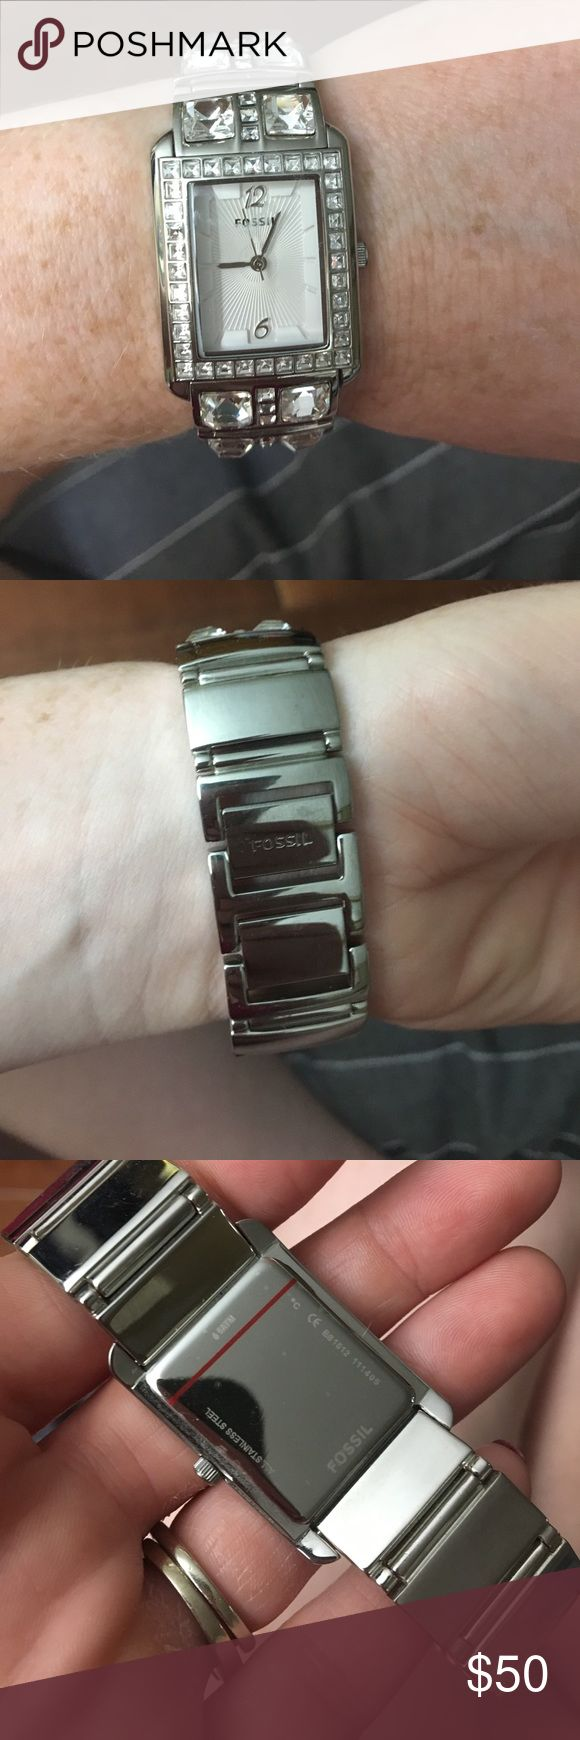 Beautiful women's FOSSIL watch! Gorgeous Women's FOSSIL watch. Stainless steel with jewel embezzlement. Just needs a new battery! Make me an offer. Fossil Accessories Watches